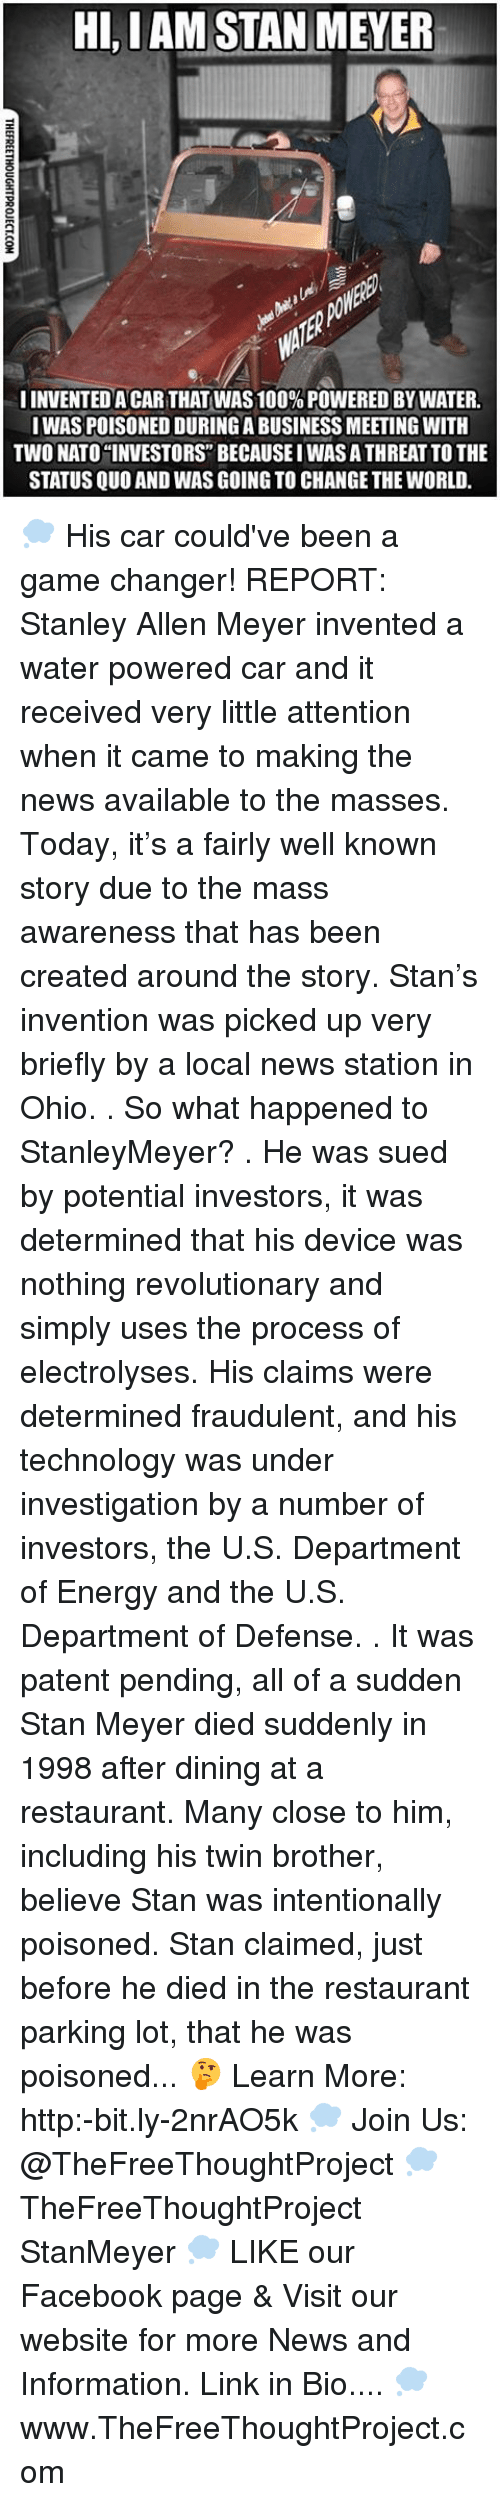 Energy, Facebook, and Memes: HI,I AM STAN MEYER  IINVENTEDACAR THAT WAS100%POWERED BY WATER.  IWASPOISONED DURINGABUSINESS MEETING WITH  Two NATO INVESTORS BECAUSEIWASATHREAT TOTHE  STATUS QUO AND WAS GOING TO CHANGE THE WORLD. 💭 His car could've been a game changer! REPORT: Stanley Allen Meyer invented a water powered car and it received very little attention when it came to making the news available to the masses. Today, it's a fairly well known story due to the mass awareness that has been created around the story. Stan's invention was picked up very briefly by a local news station in Ohio. . So what happened to StanleyMeyer? . He was sued by potential investors, it was determined that his device was nothing revolutionary and simply uses the process of electrolyses. His claims were determined fraudulent, and his technology was under investigation by a number of investors, the U.S. Department of Energy and the U.S. Department of Defense. . It was patent pending, all of a sudden Stan Meyer died suddenly in 1998 after dining at a restaurant. Many close to him, including his twin brother, believe Stan was intentionally poisoned. Stan claimed, just before he died in the restaurant parking lot, that he was poisoned... 🤔 Learn More: http:-bit.ly-2nrAO5k 💭 Join Us: @TheFreeThoughtProject 💭 TheFreeThoughtProject StanMeyer 💭 LIKE our Facebook page & Visit our website for more News and Information. Link in Bio.... 💭 www.TheFreeThoughtProject.com